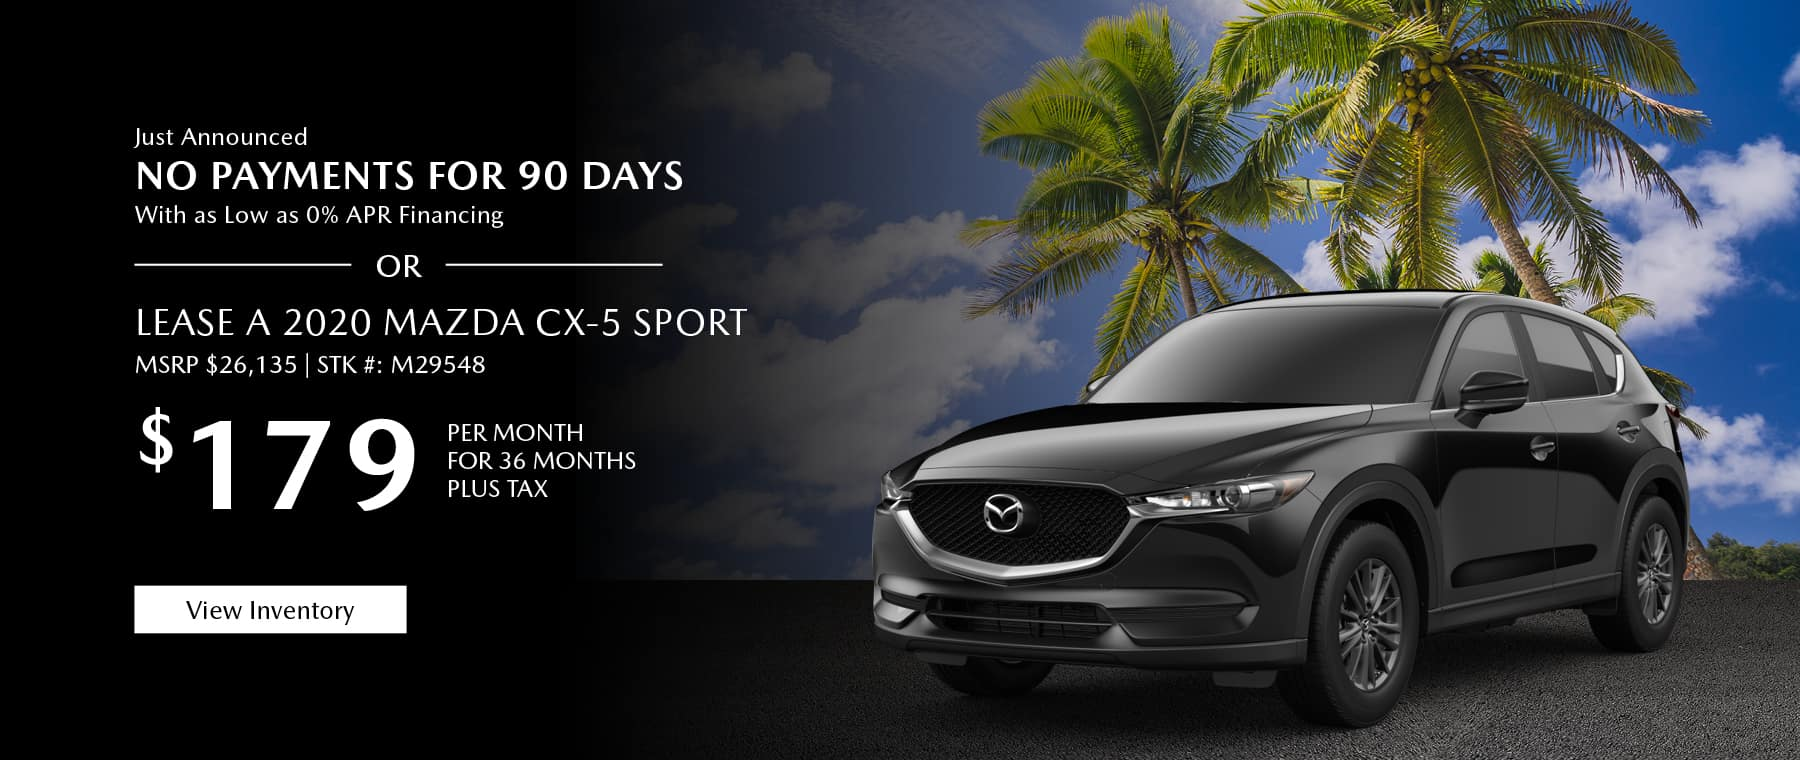 Just Announced, No payments for 90 days with as low as %0 APR financing, or lease the 2020 Mazda CX-5 for $179 per month, plus tax. View inventory.